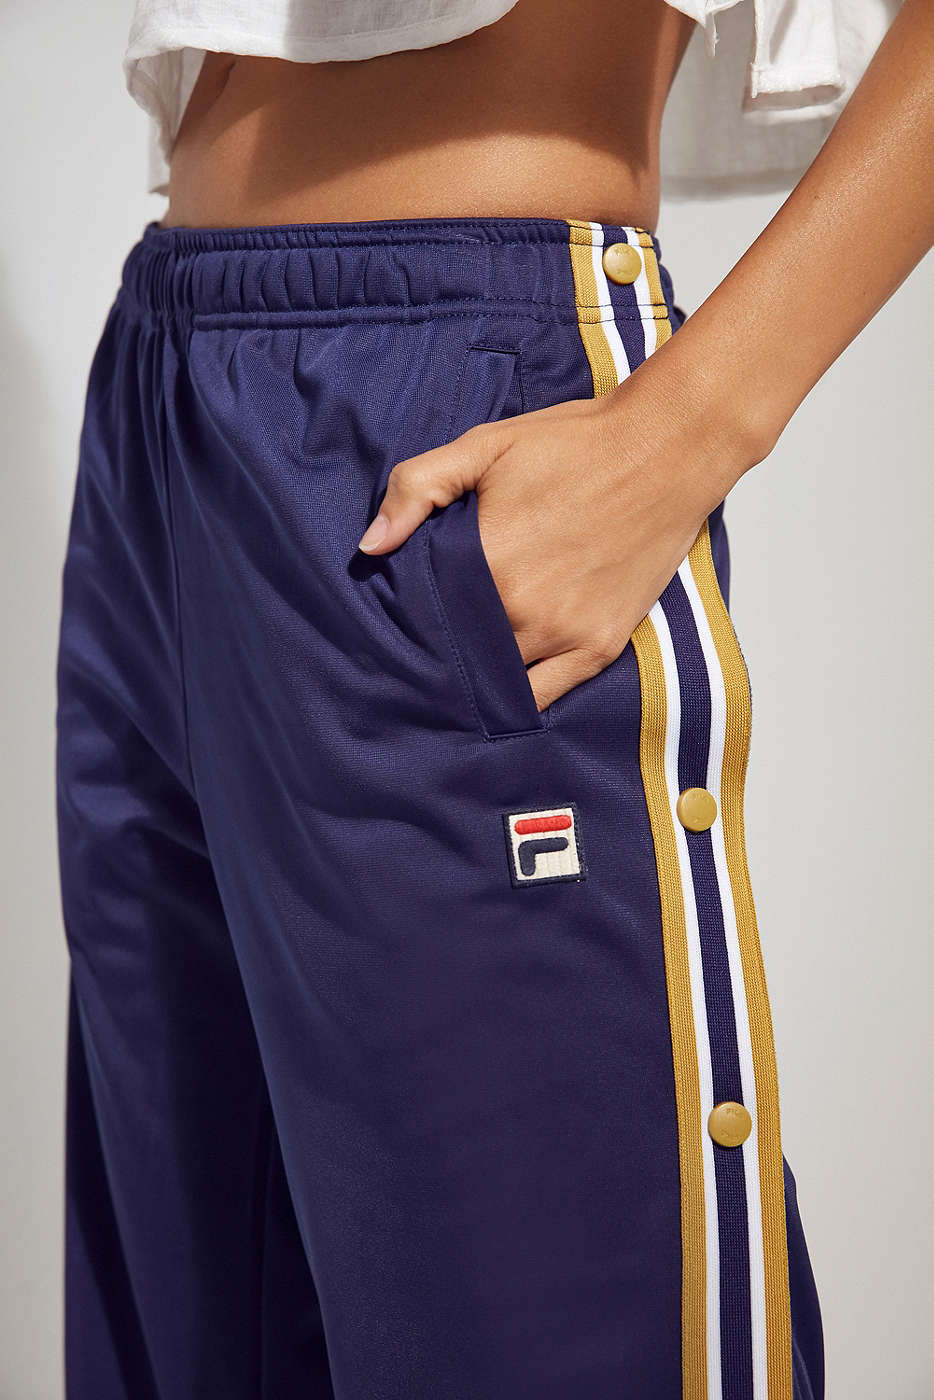 New FILA  Urban Outfitters Basketball Collection for Men